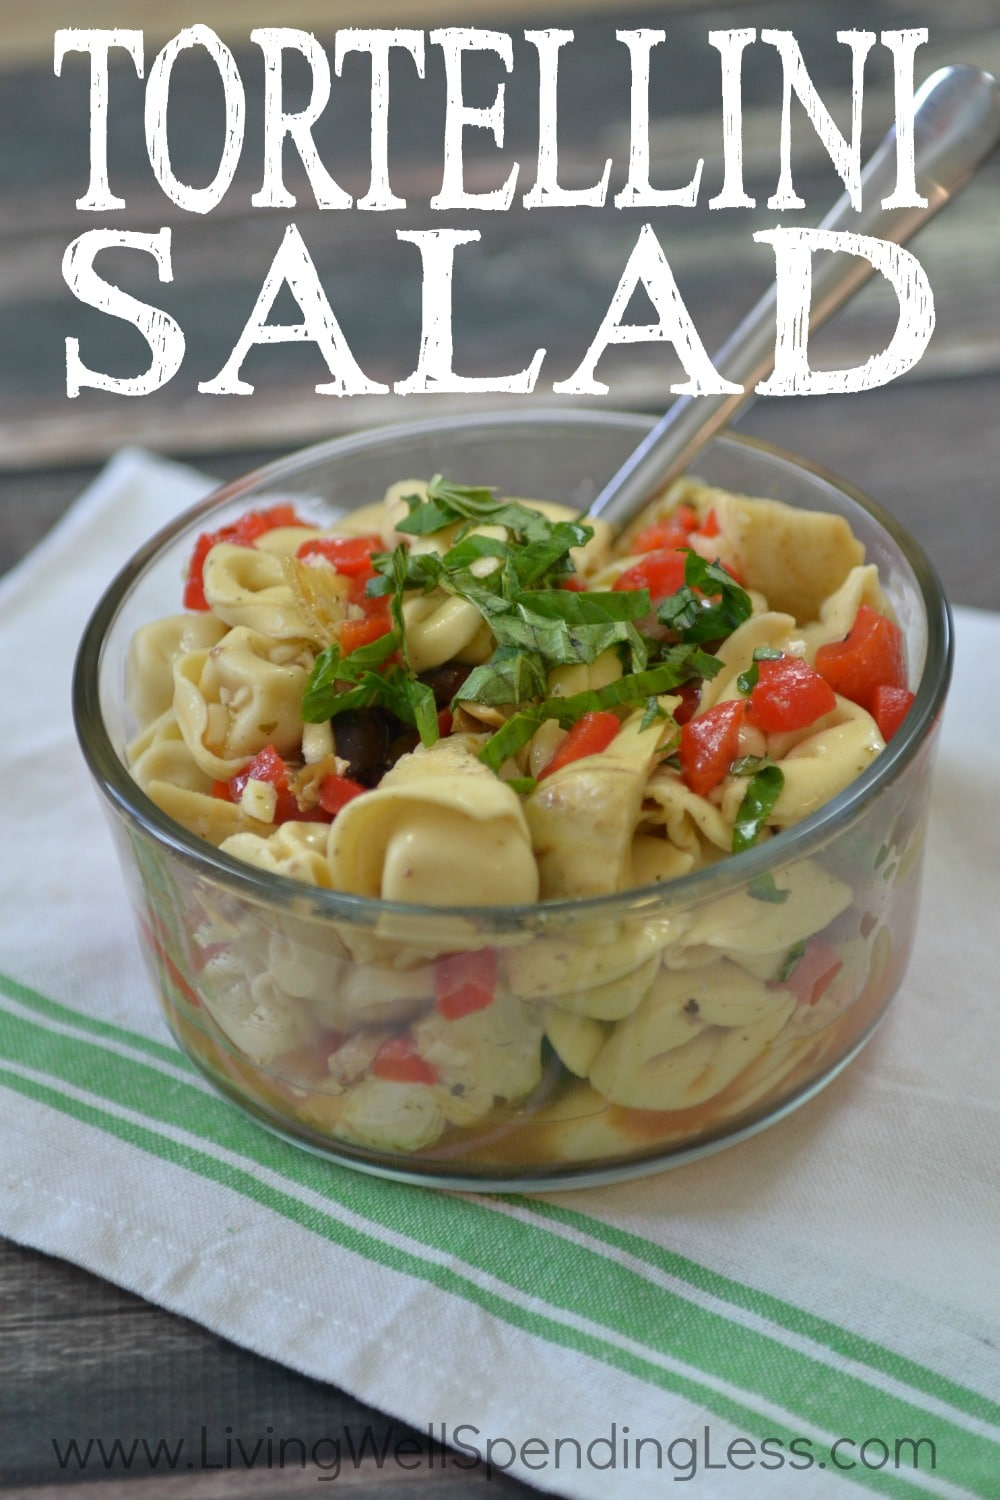 Ready for a fresh summer meal that comes that comes together fast? This flavor-packed Tortellini Salad is the perfect solution for lazy summer nights. Not only is it absolutely delicious, it requires just six easy ingredients. Hearty enough to stand on its own, it is also great served with grilled chicken, steak or shrimp for a 10-minute meal your whole family will love!